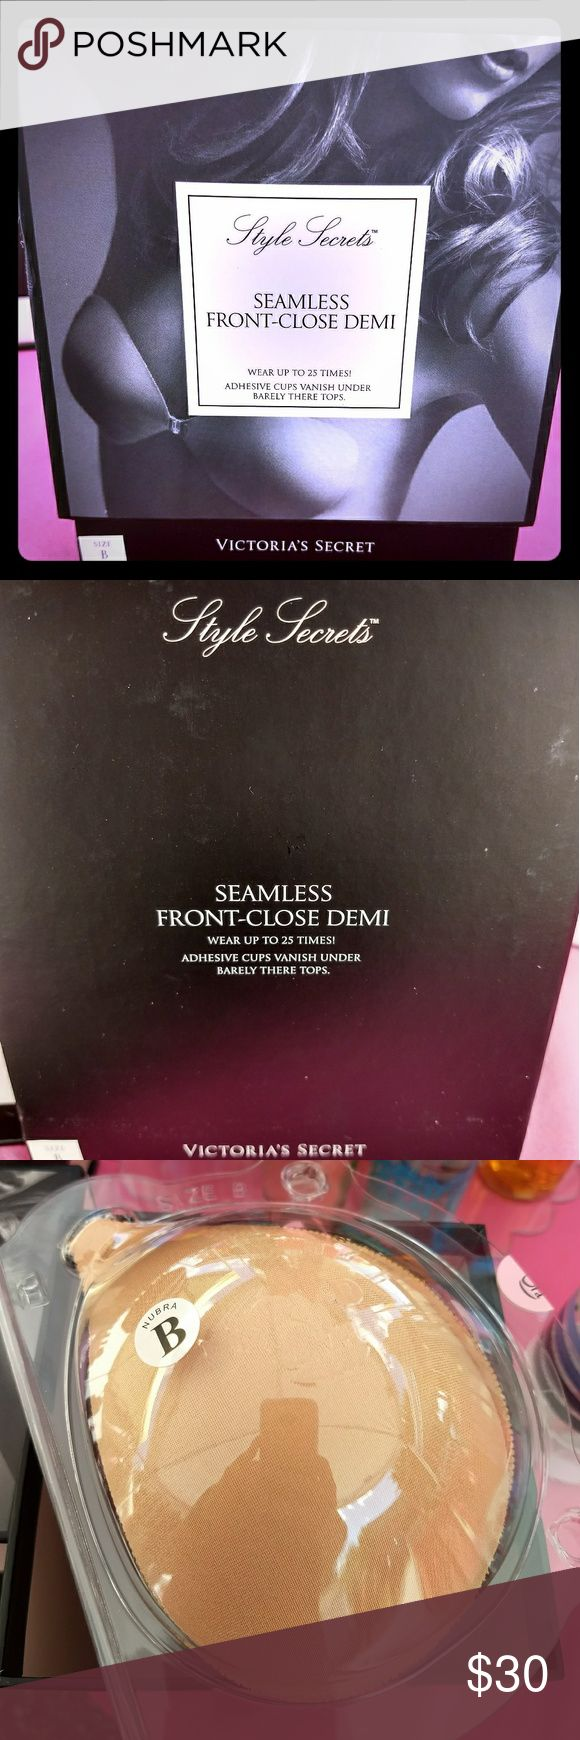 Victoria's Secret Style Secrets Seamless Front Close Demi. Adhesive cups vanish under barely there tops. Size B. Color Nude. Wear up to 25 times! Victoria's Secret Intimates & Sleepwear Bras